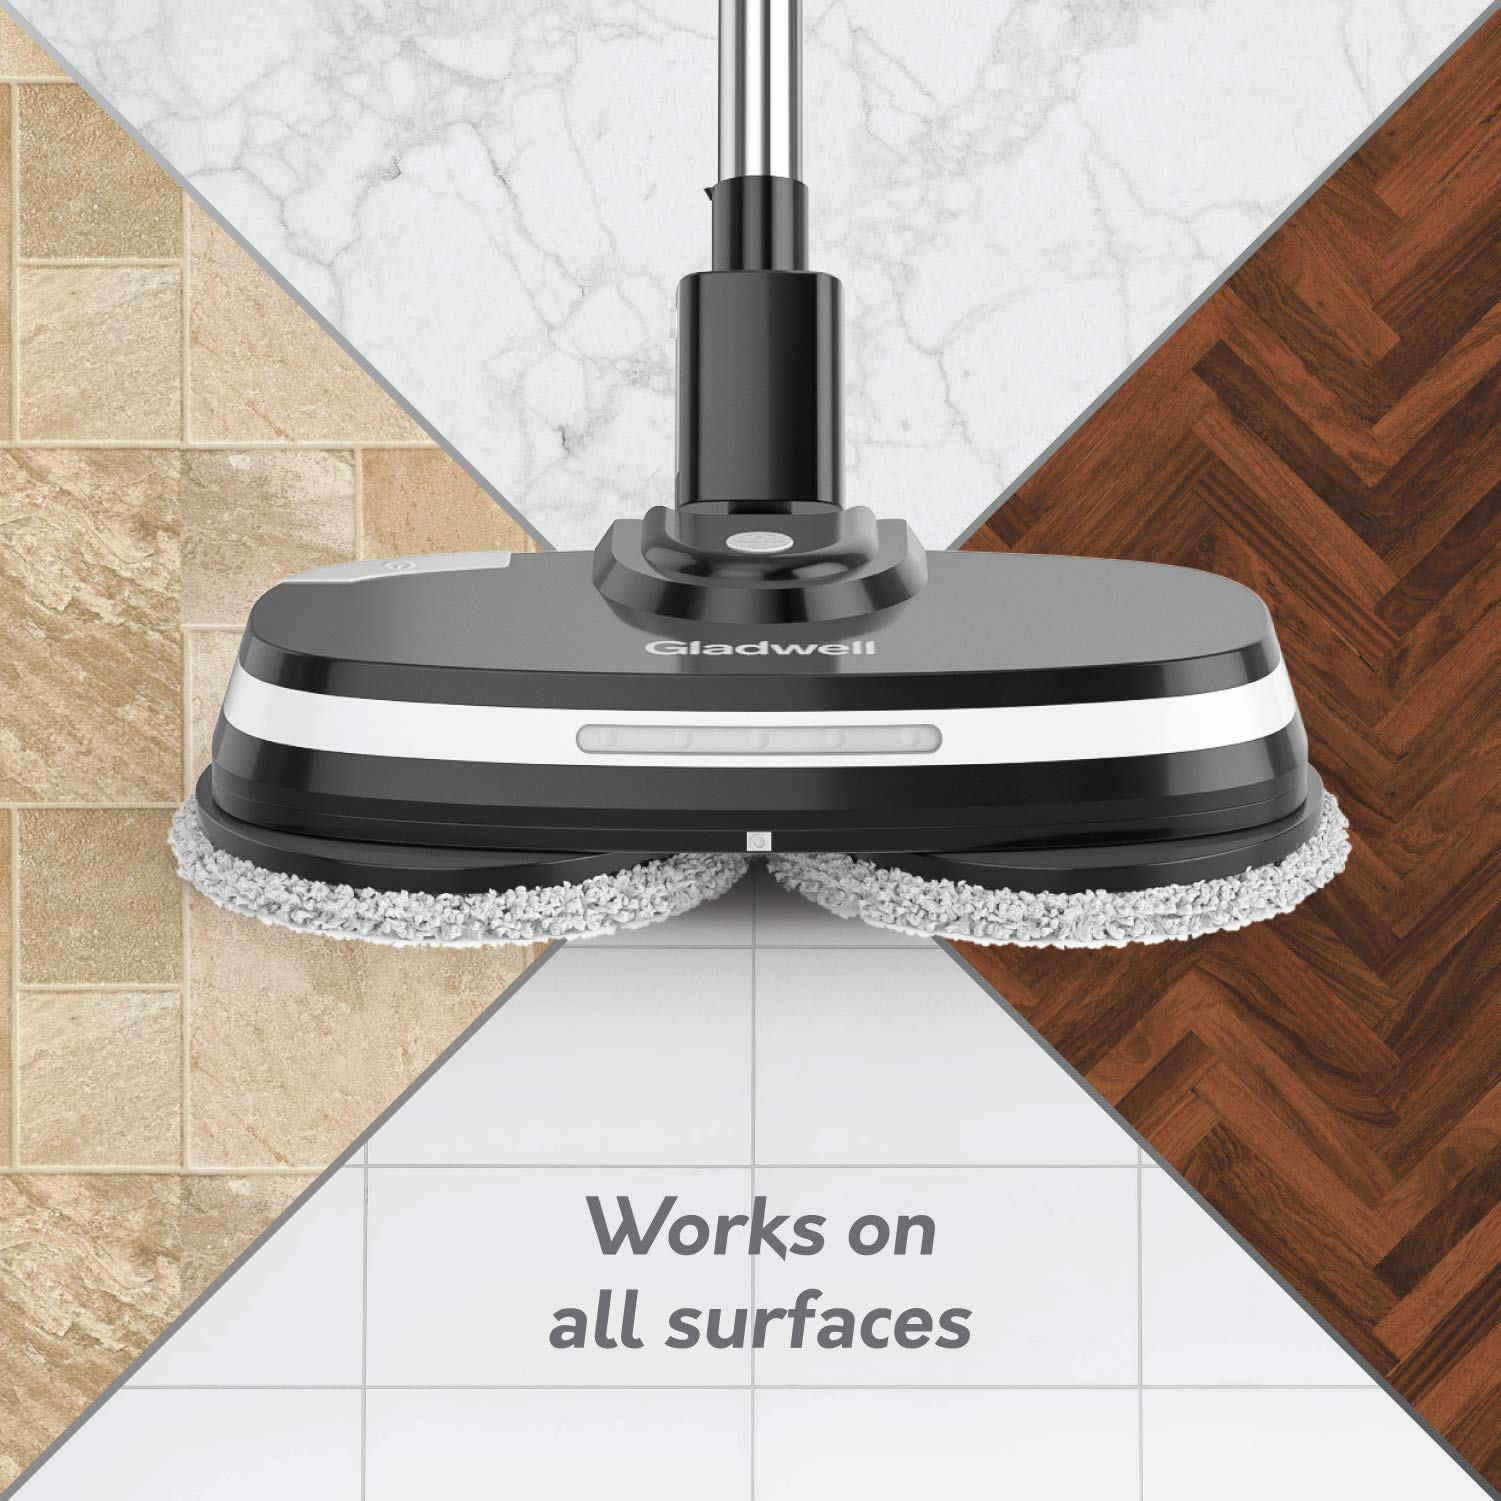 Gladwell Cordless Electric Mop - 3 In 1 Spinner, Scrubber, Waxer Quiet, Powerful Cleaner Spin Scrubber & Buffer, Polisher For Hard wood, Tile, Vinyl, Marble, Laminate Floor - 1 Year Warranty - Black by Gladwell (Image #5)